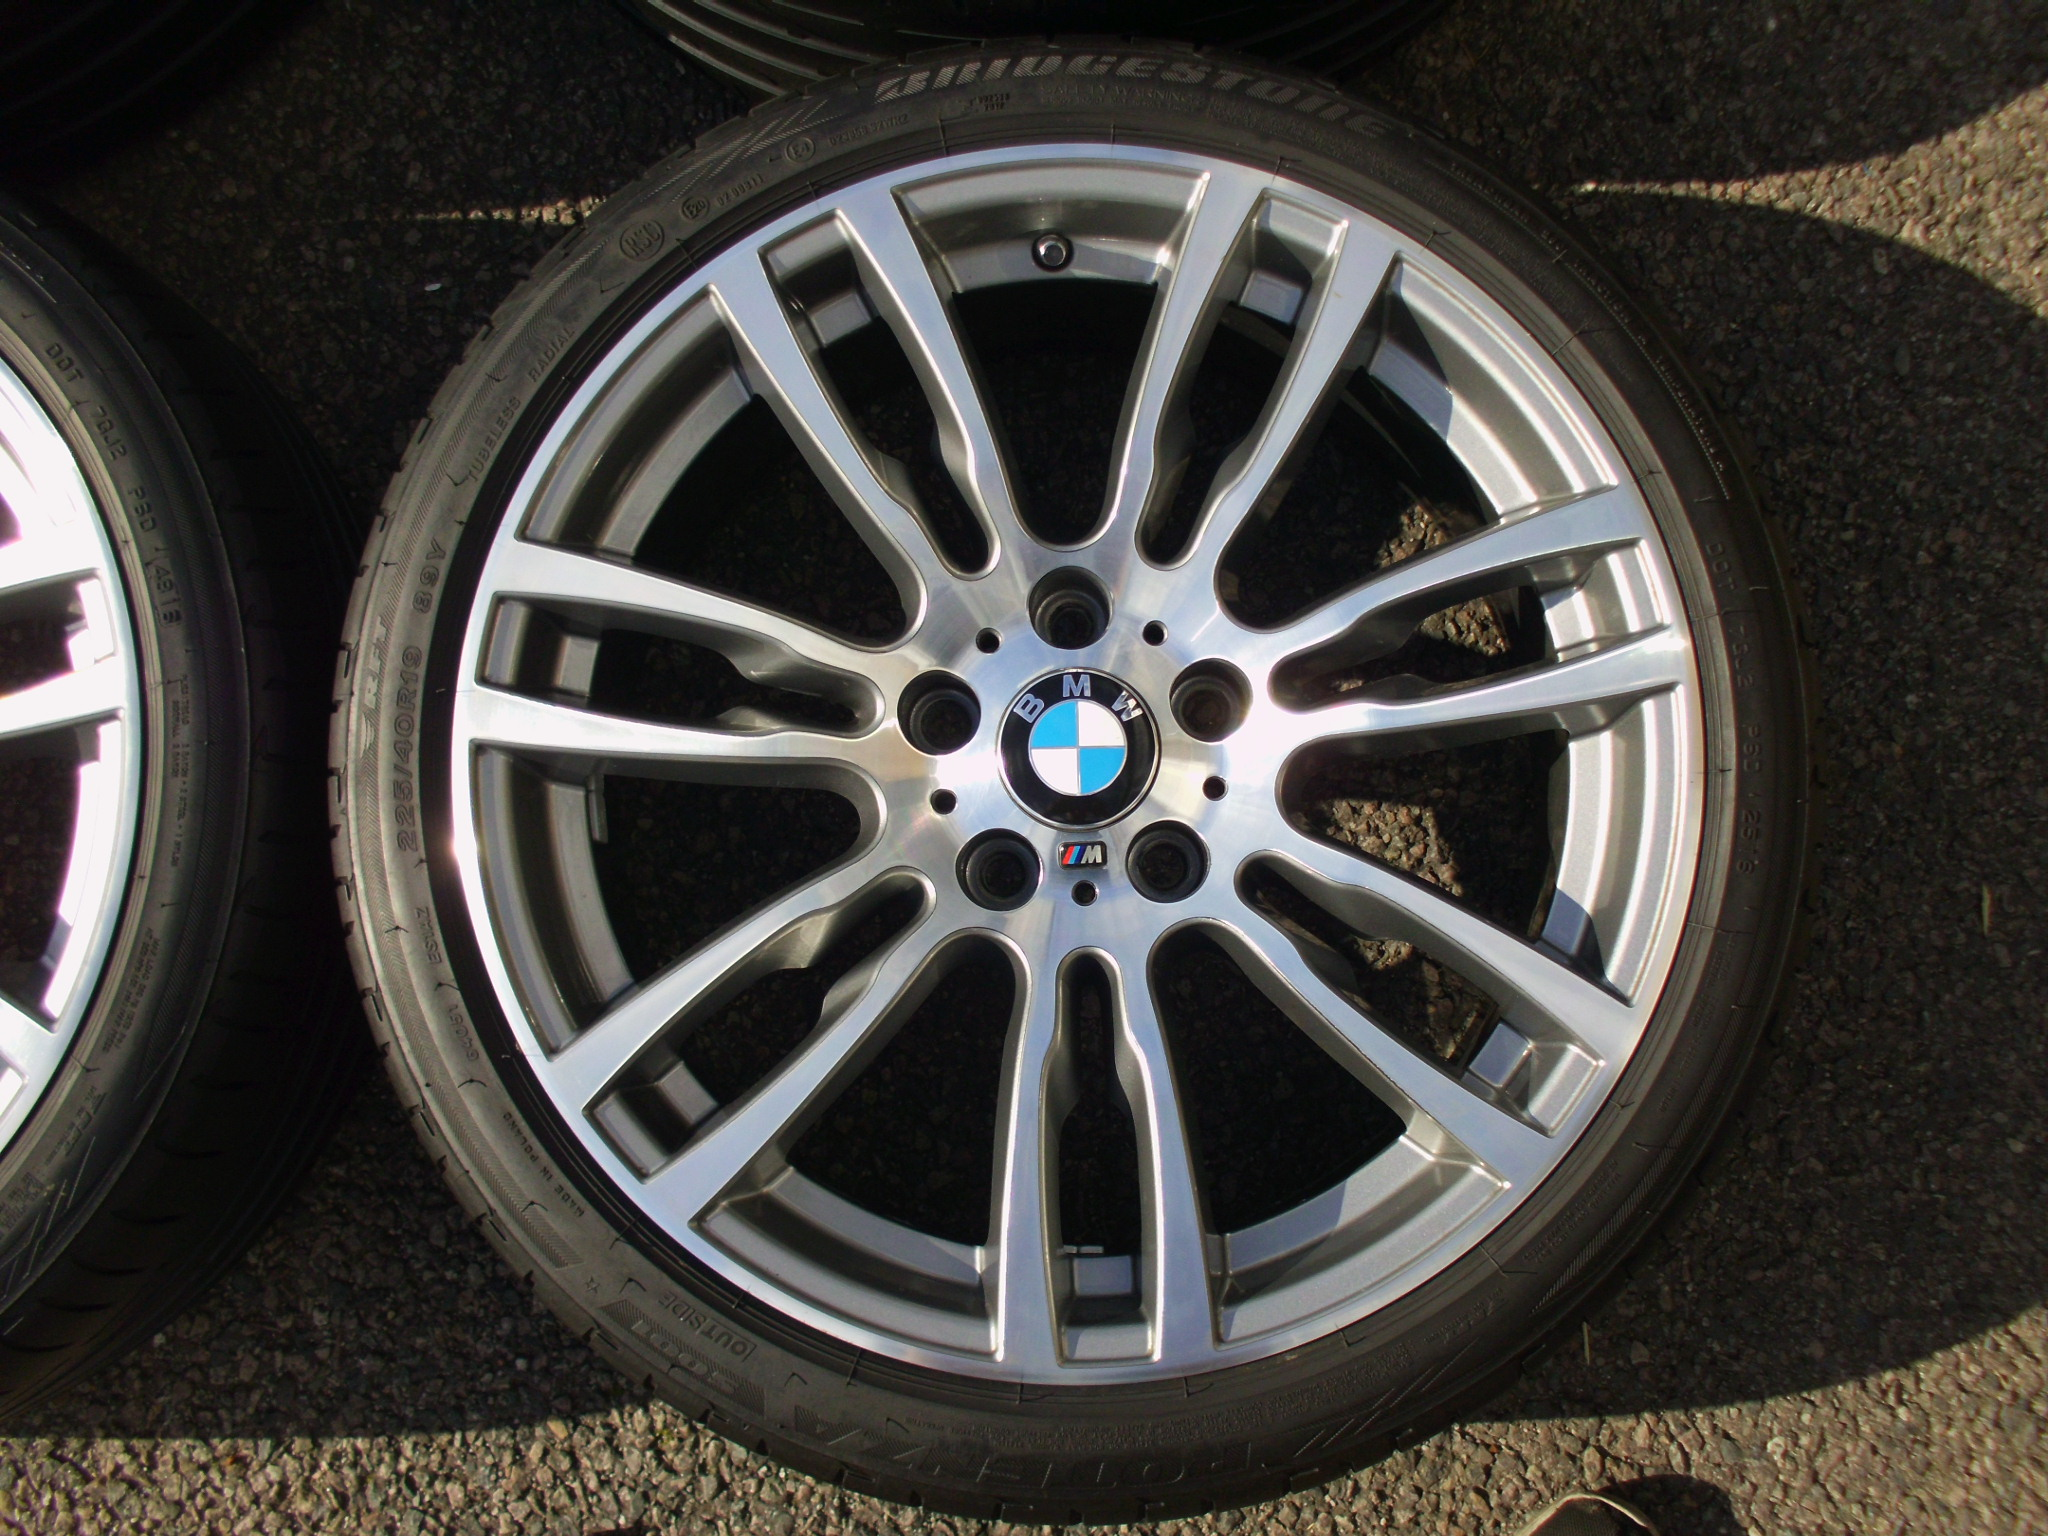 "USED 19"" GENUINE STYLE 403 F30/31 M DOUBLE SPOKE ALLOYS WHEELS, RECENT REFURB INC GOOD BRIDEGSTONE RUNFLAT TYRES"